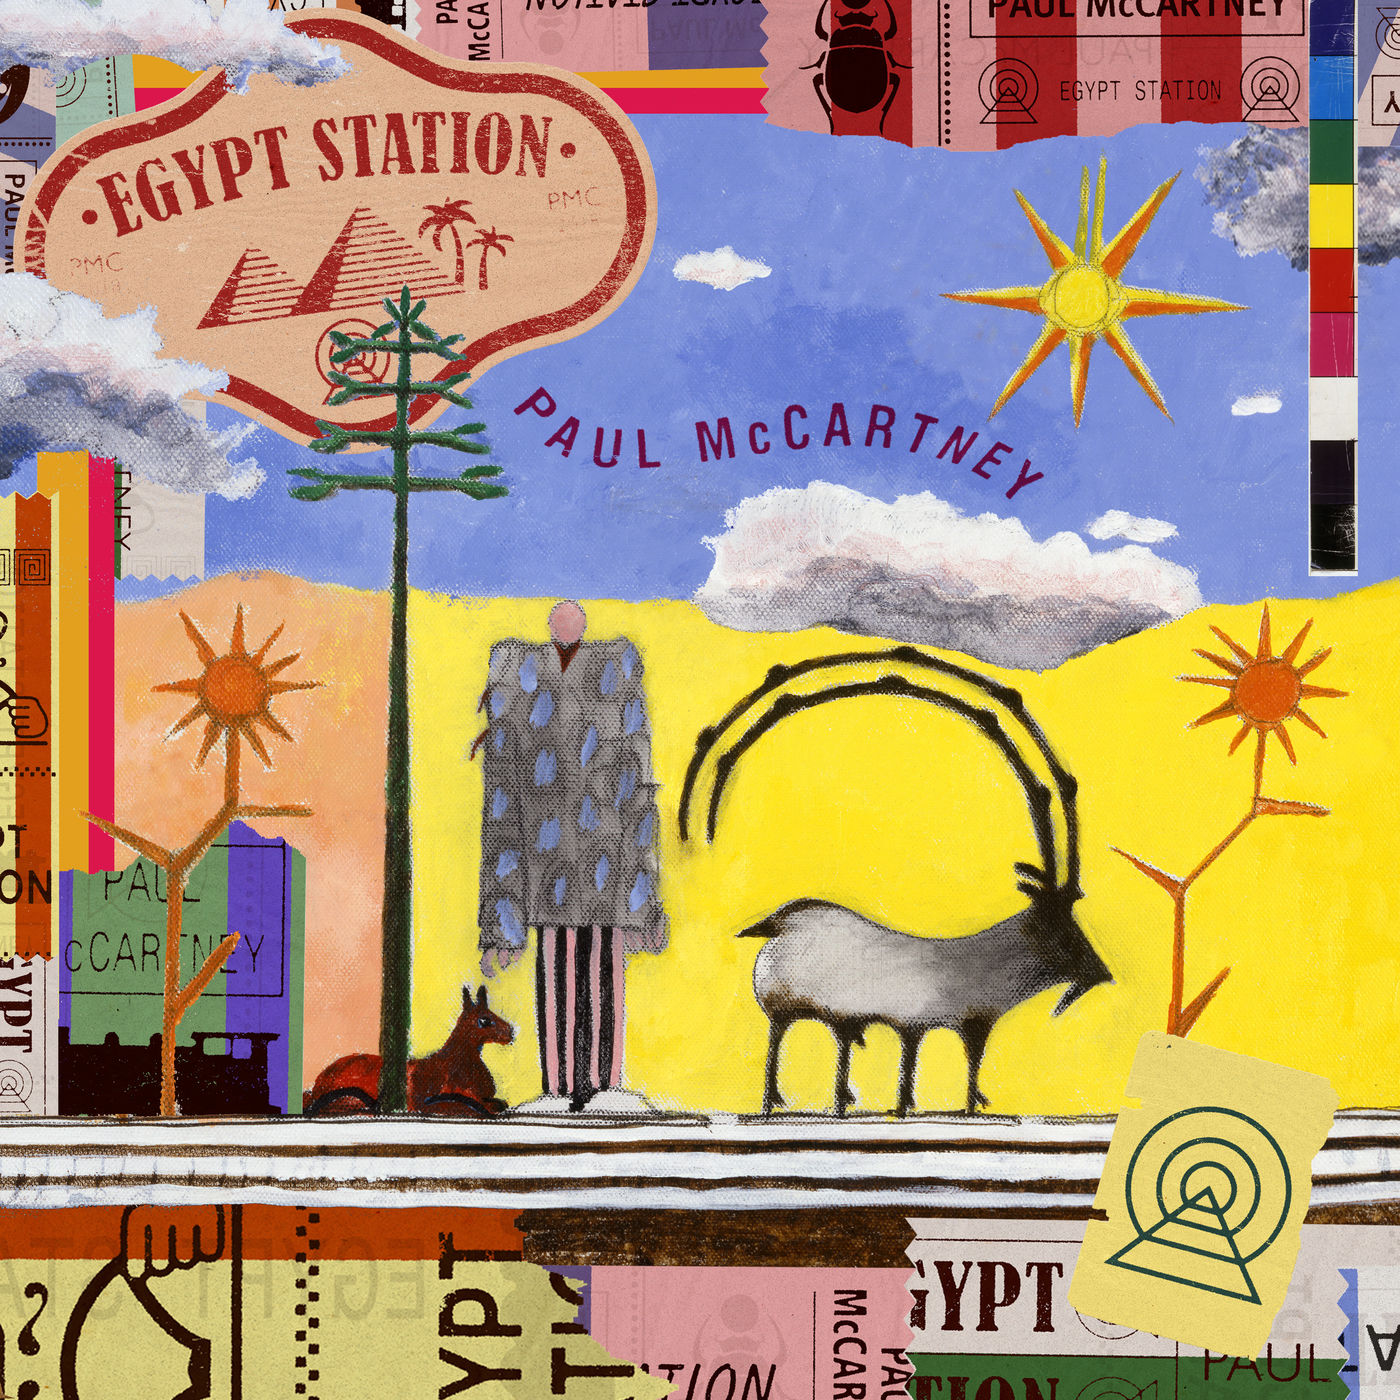 Download torrent Paul McCartney - Egypt Station (2018)